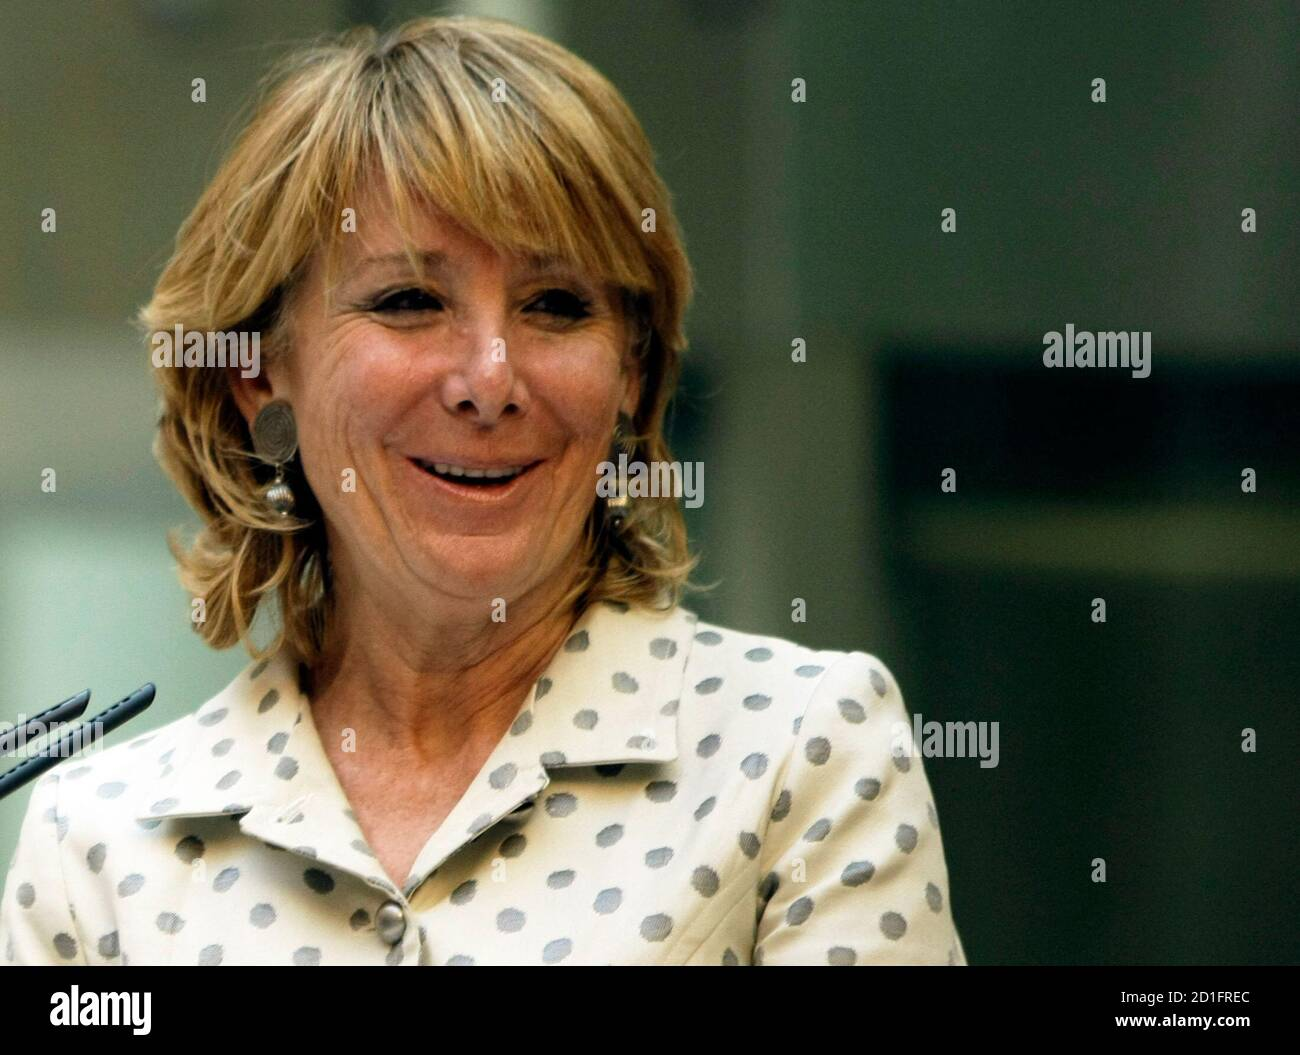 Esperanza Aguirre, Madrid regional president, smiles during a news conference in the regional headquarters of the Popular Party in central Madrid November 27, 2008. Aguirre explained how she escaped unhurt from the lobby of Mumbai's Trident-Oberoi hotel when Islamist militants fired automatic weapons indiscriminately and threw grenades before settling in for a long siege at the Taj and the Trident-Oberoi hotels.  REUTERS/Sergio Perez  (SPAIN) Stock Photo